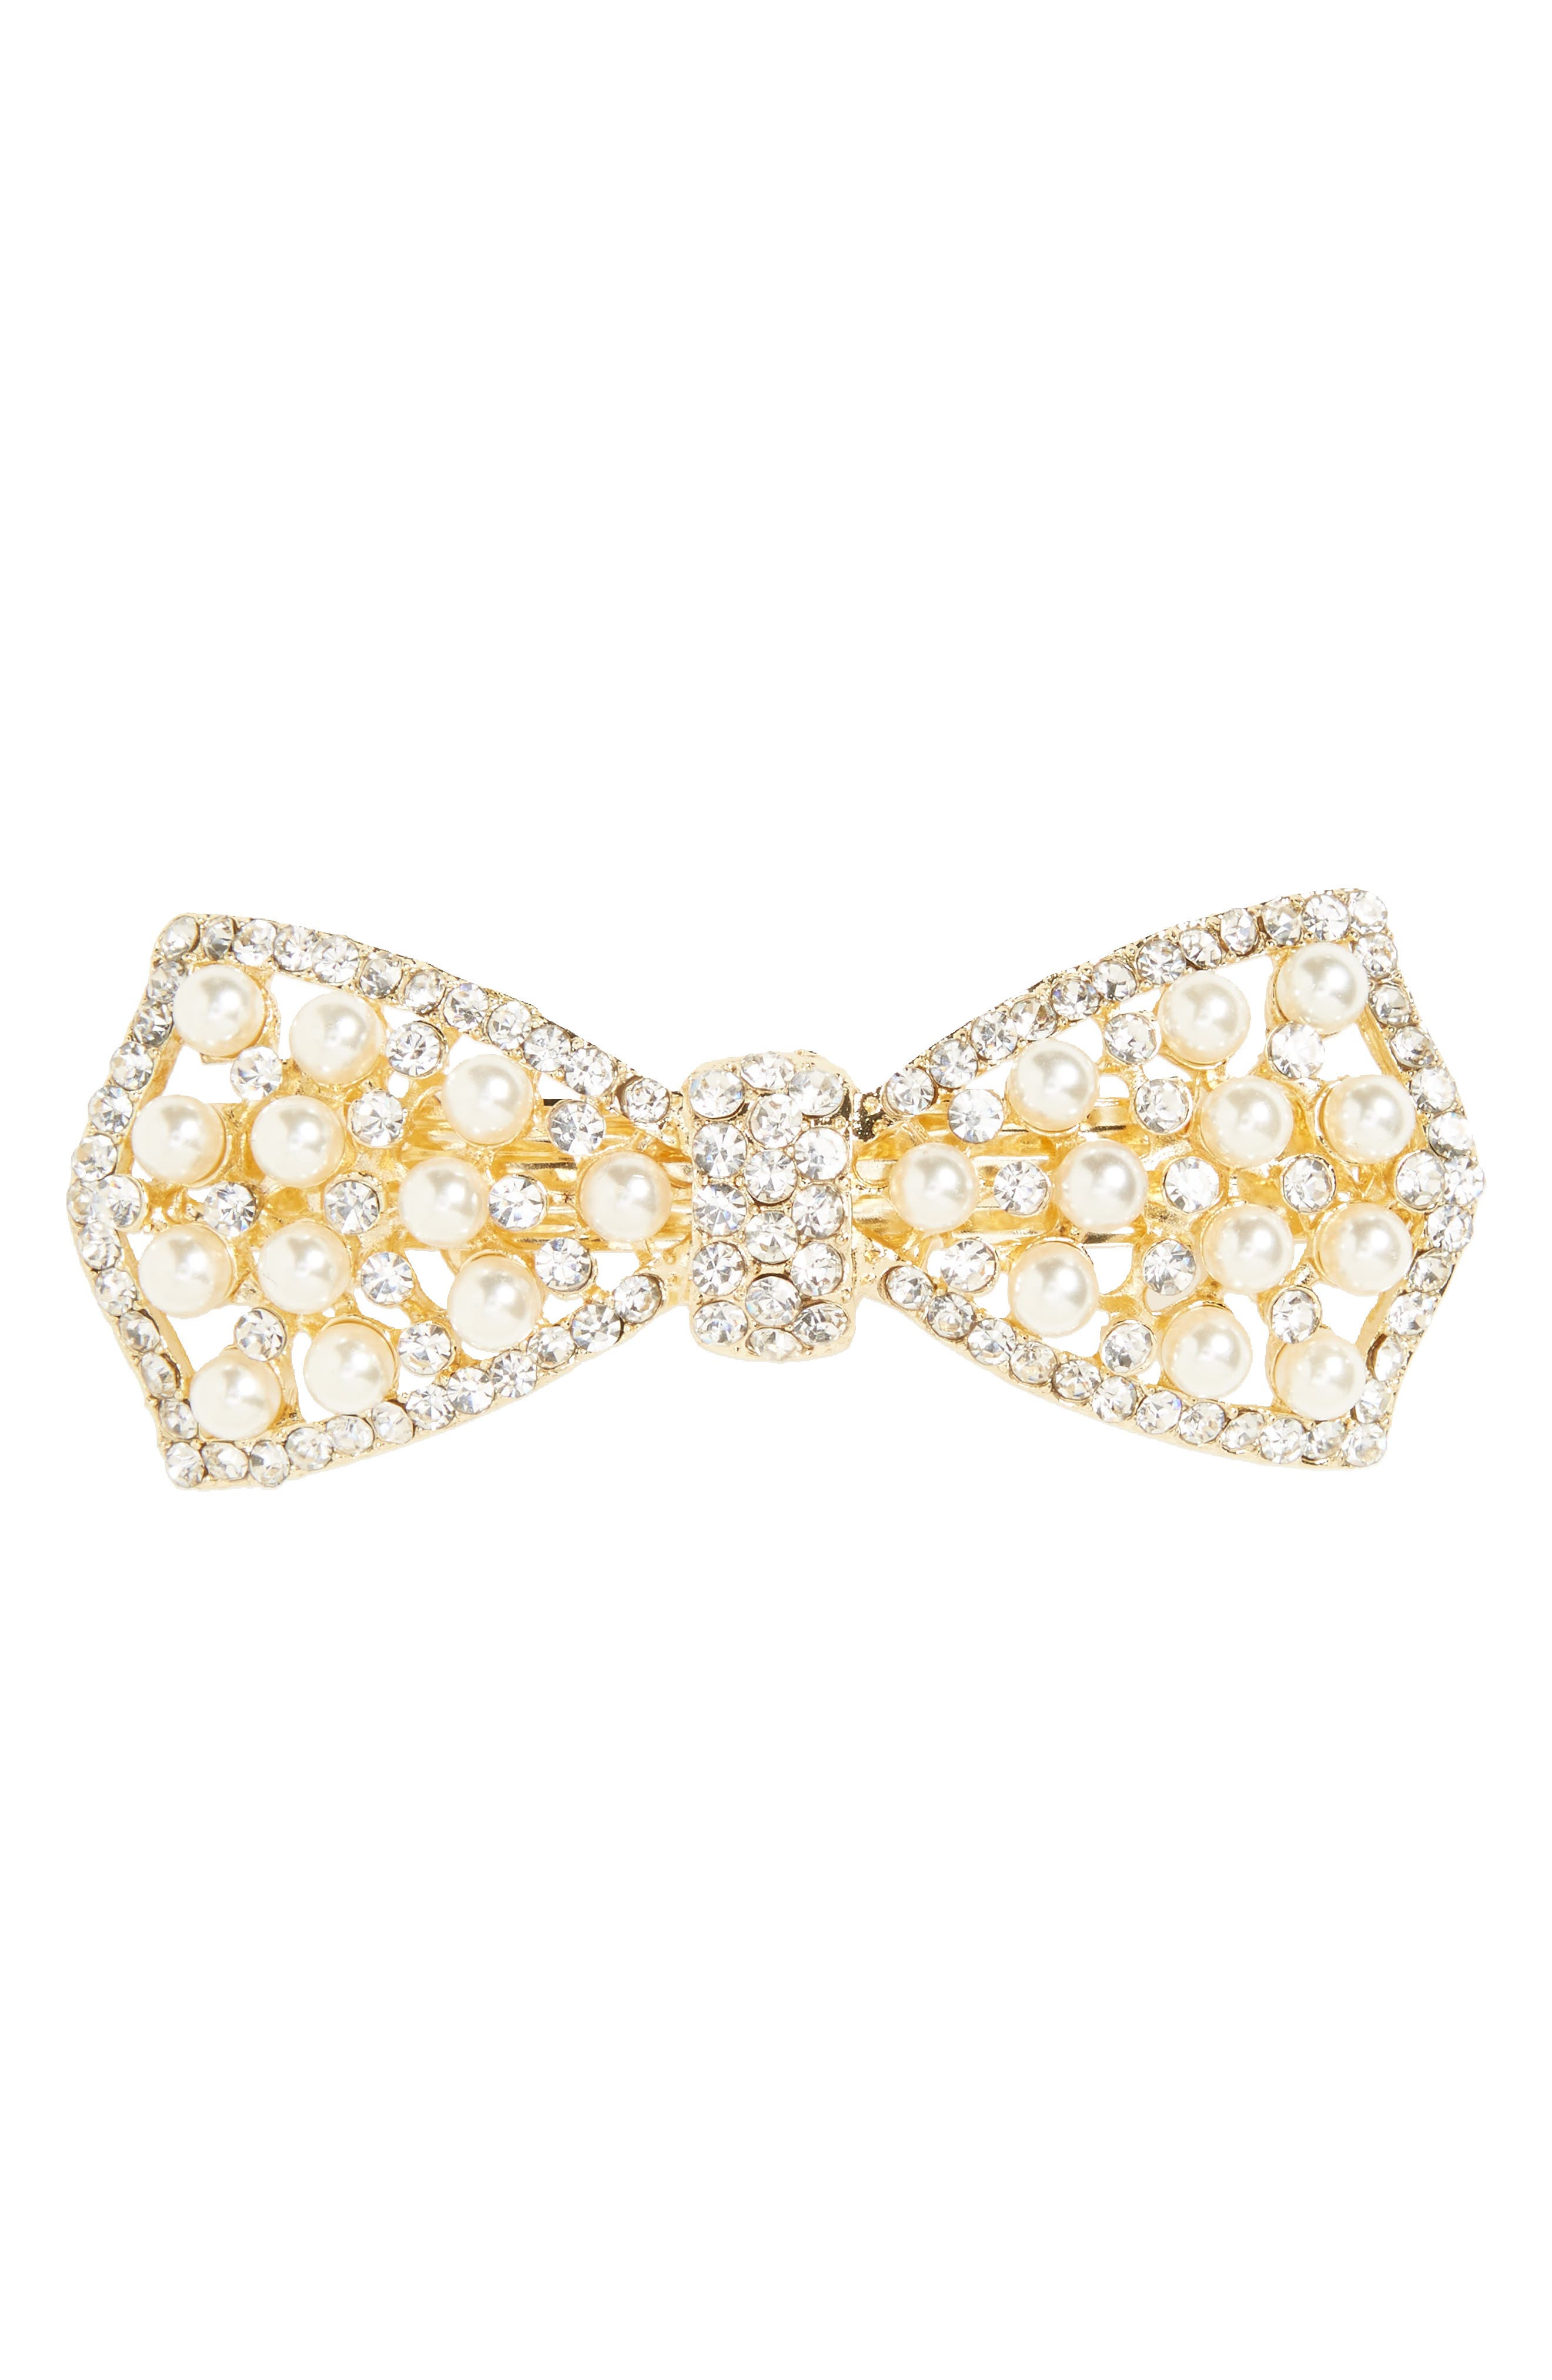 Imitation Pearl & Crystal Barrette,                         Main,                         color, 710